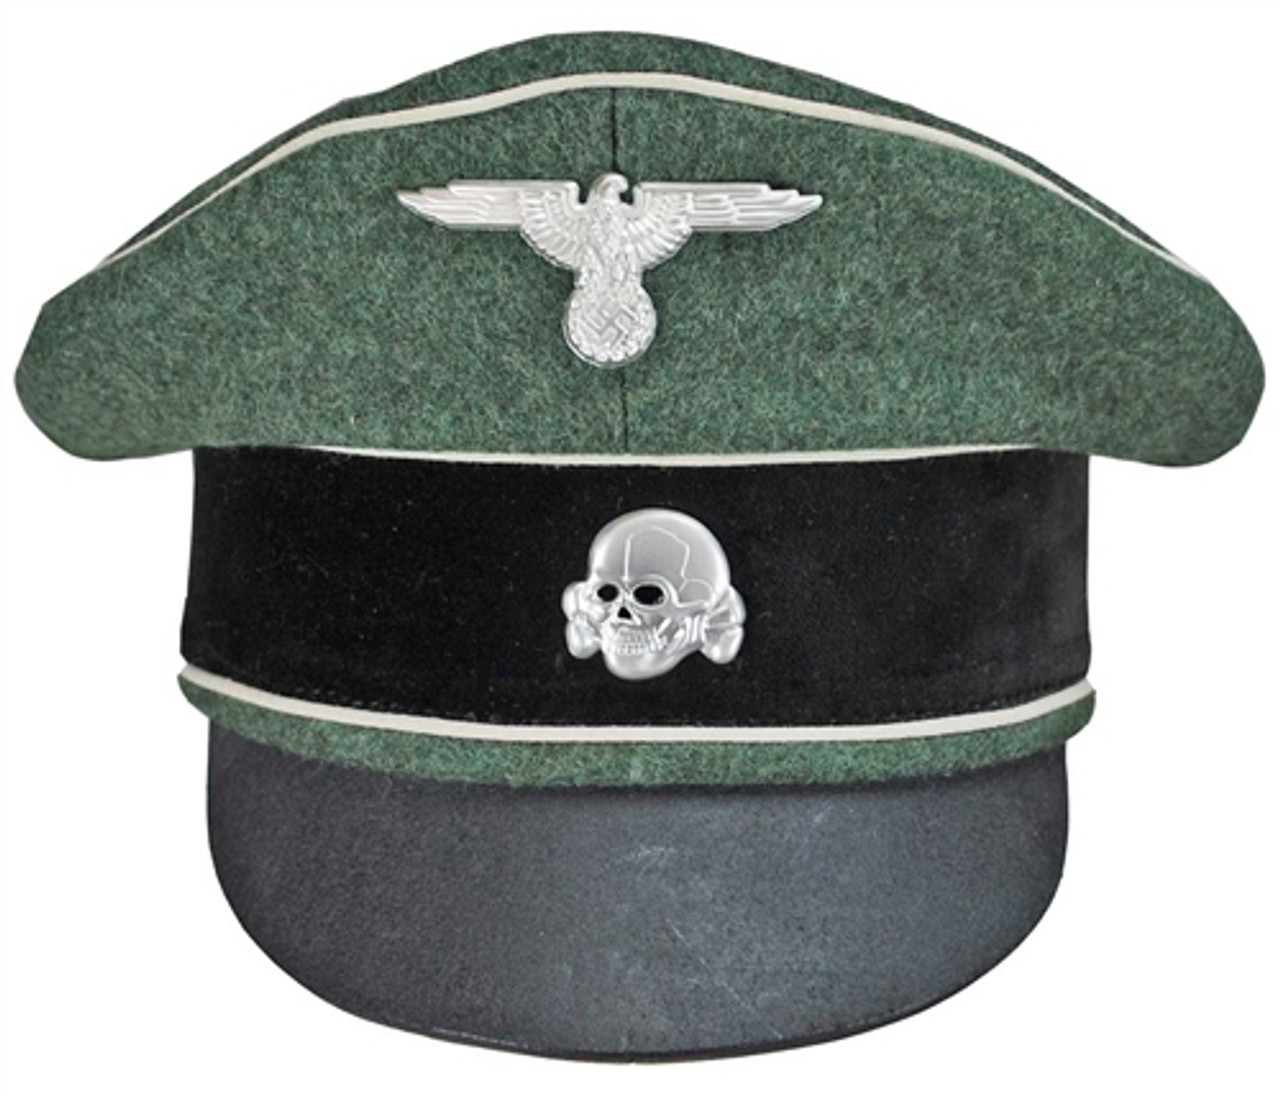 Waffen SS Infantry Officer Crusher Cap from Hessen Antique